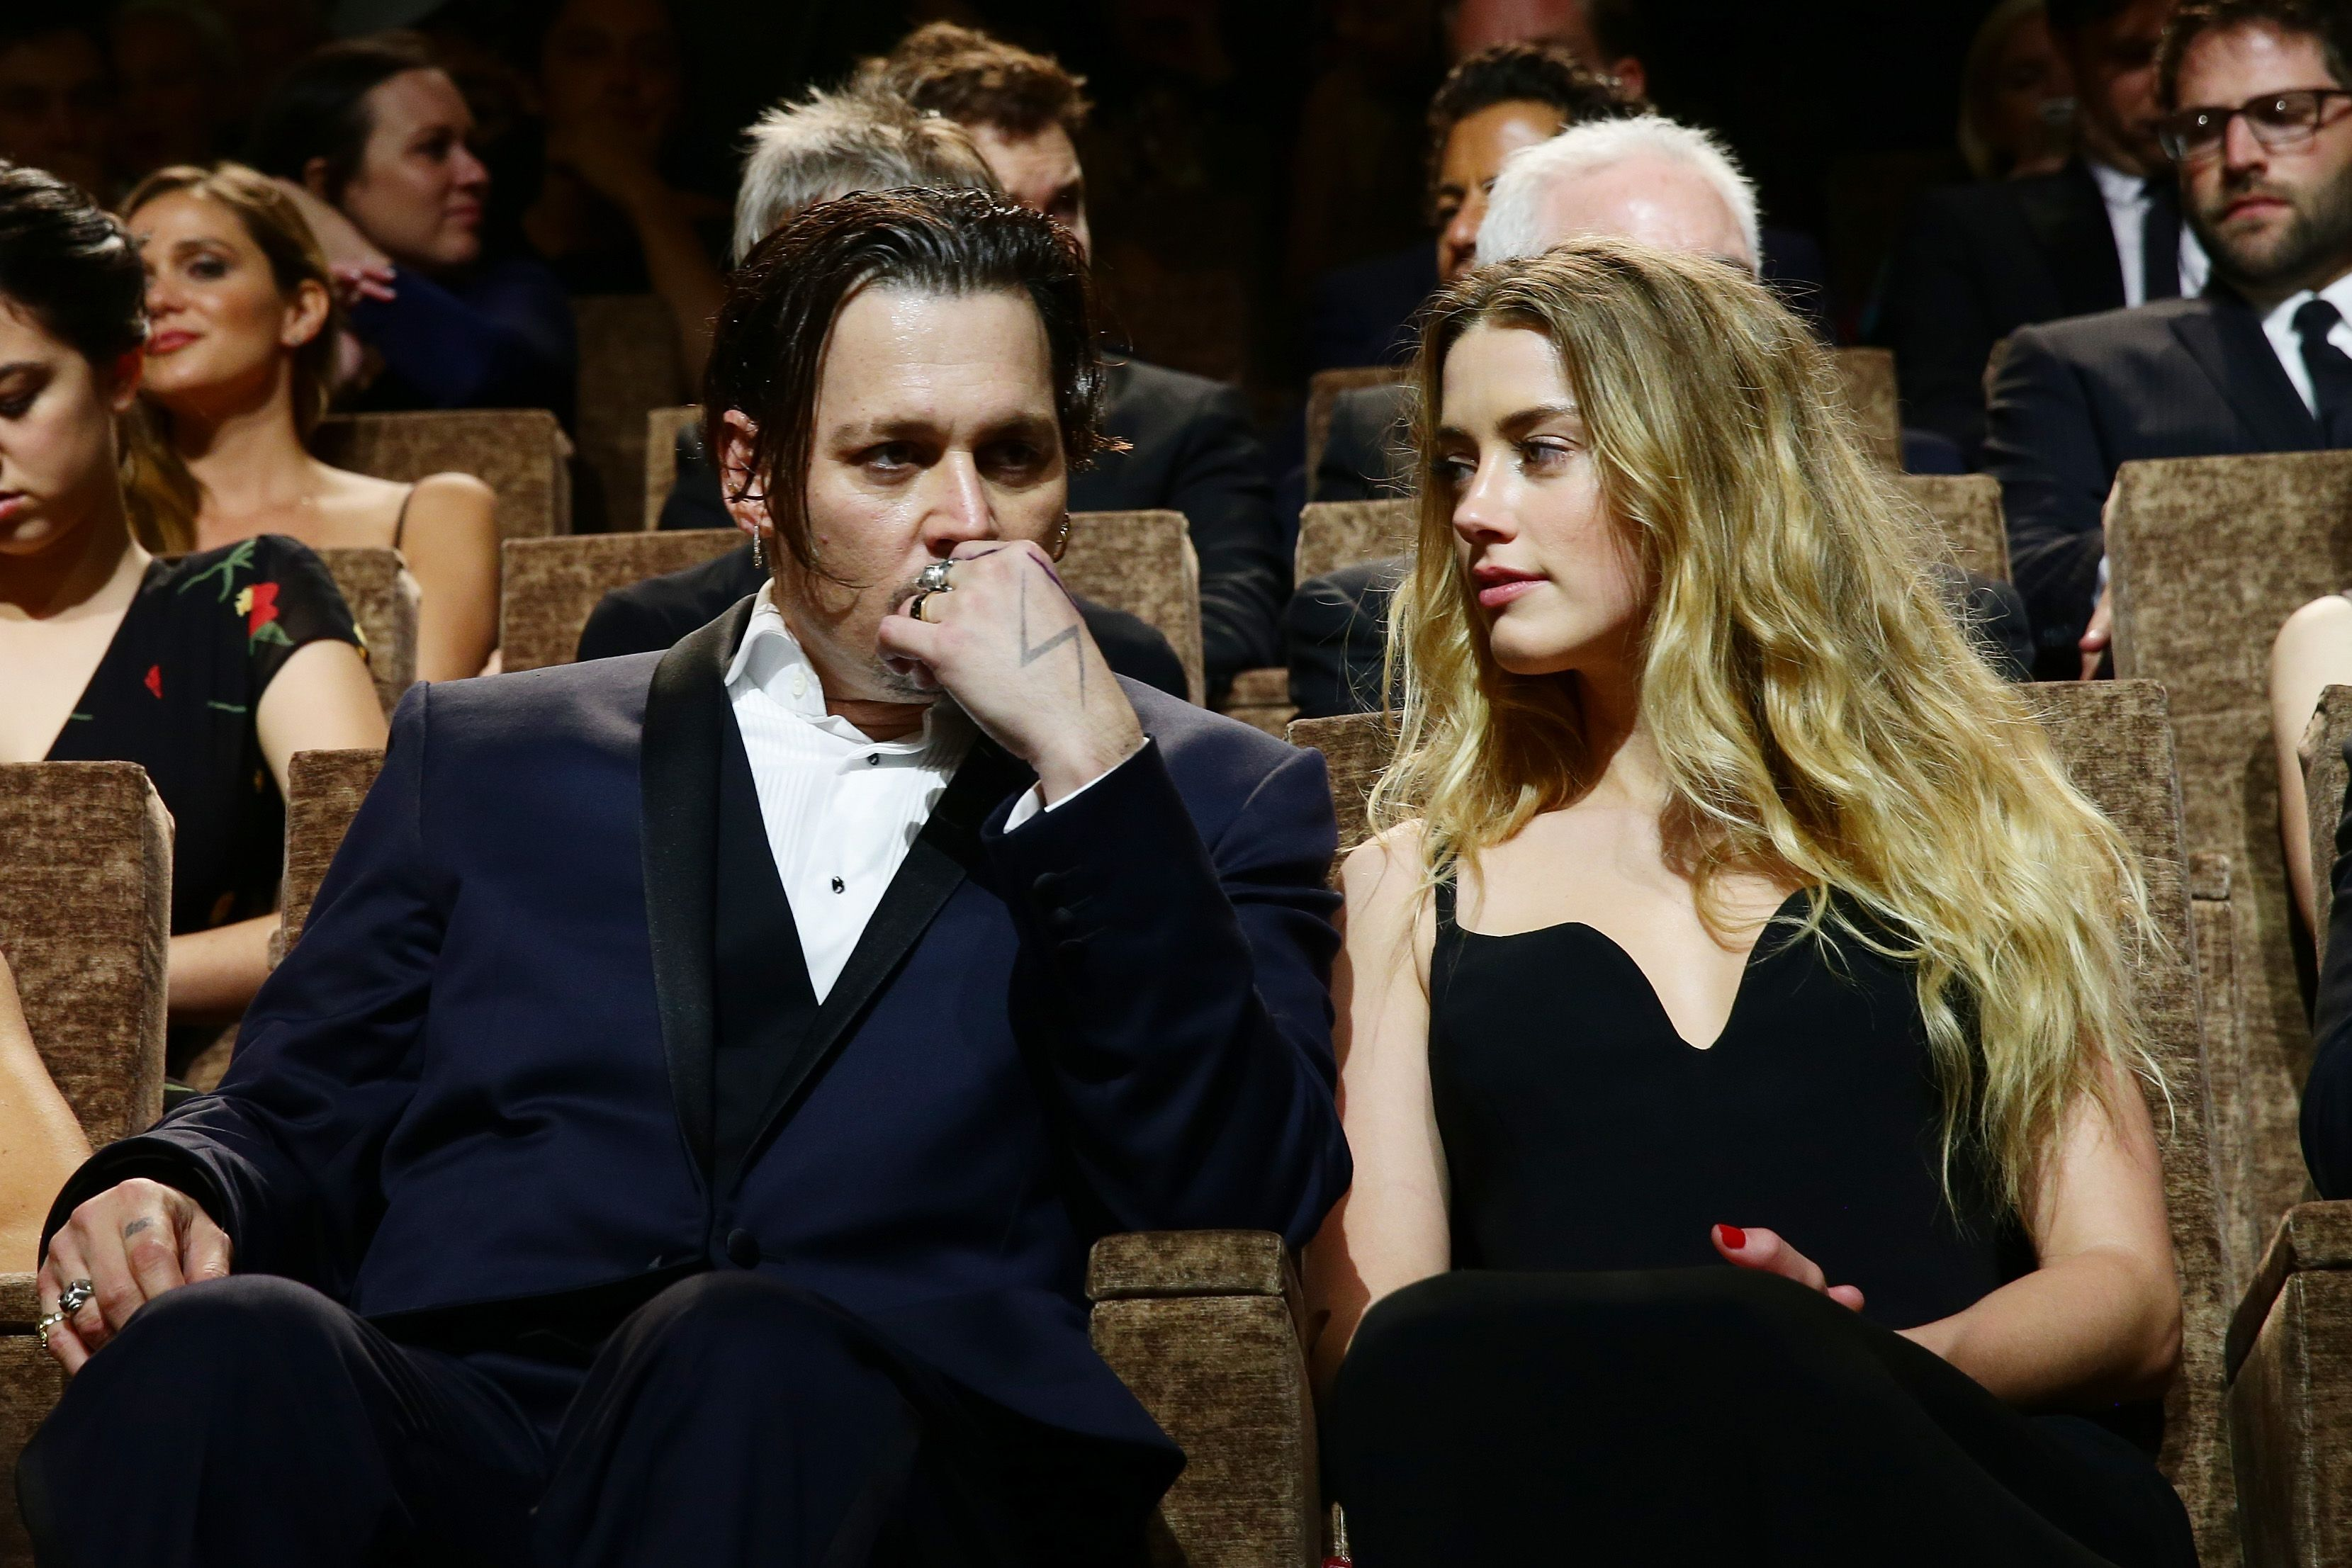 Johnny Depp and Amber Heard on September 4, 2015, in Italy | Photo:Getty Images